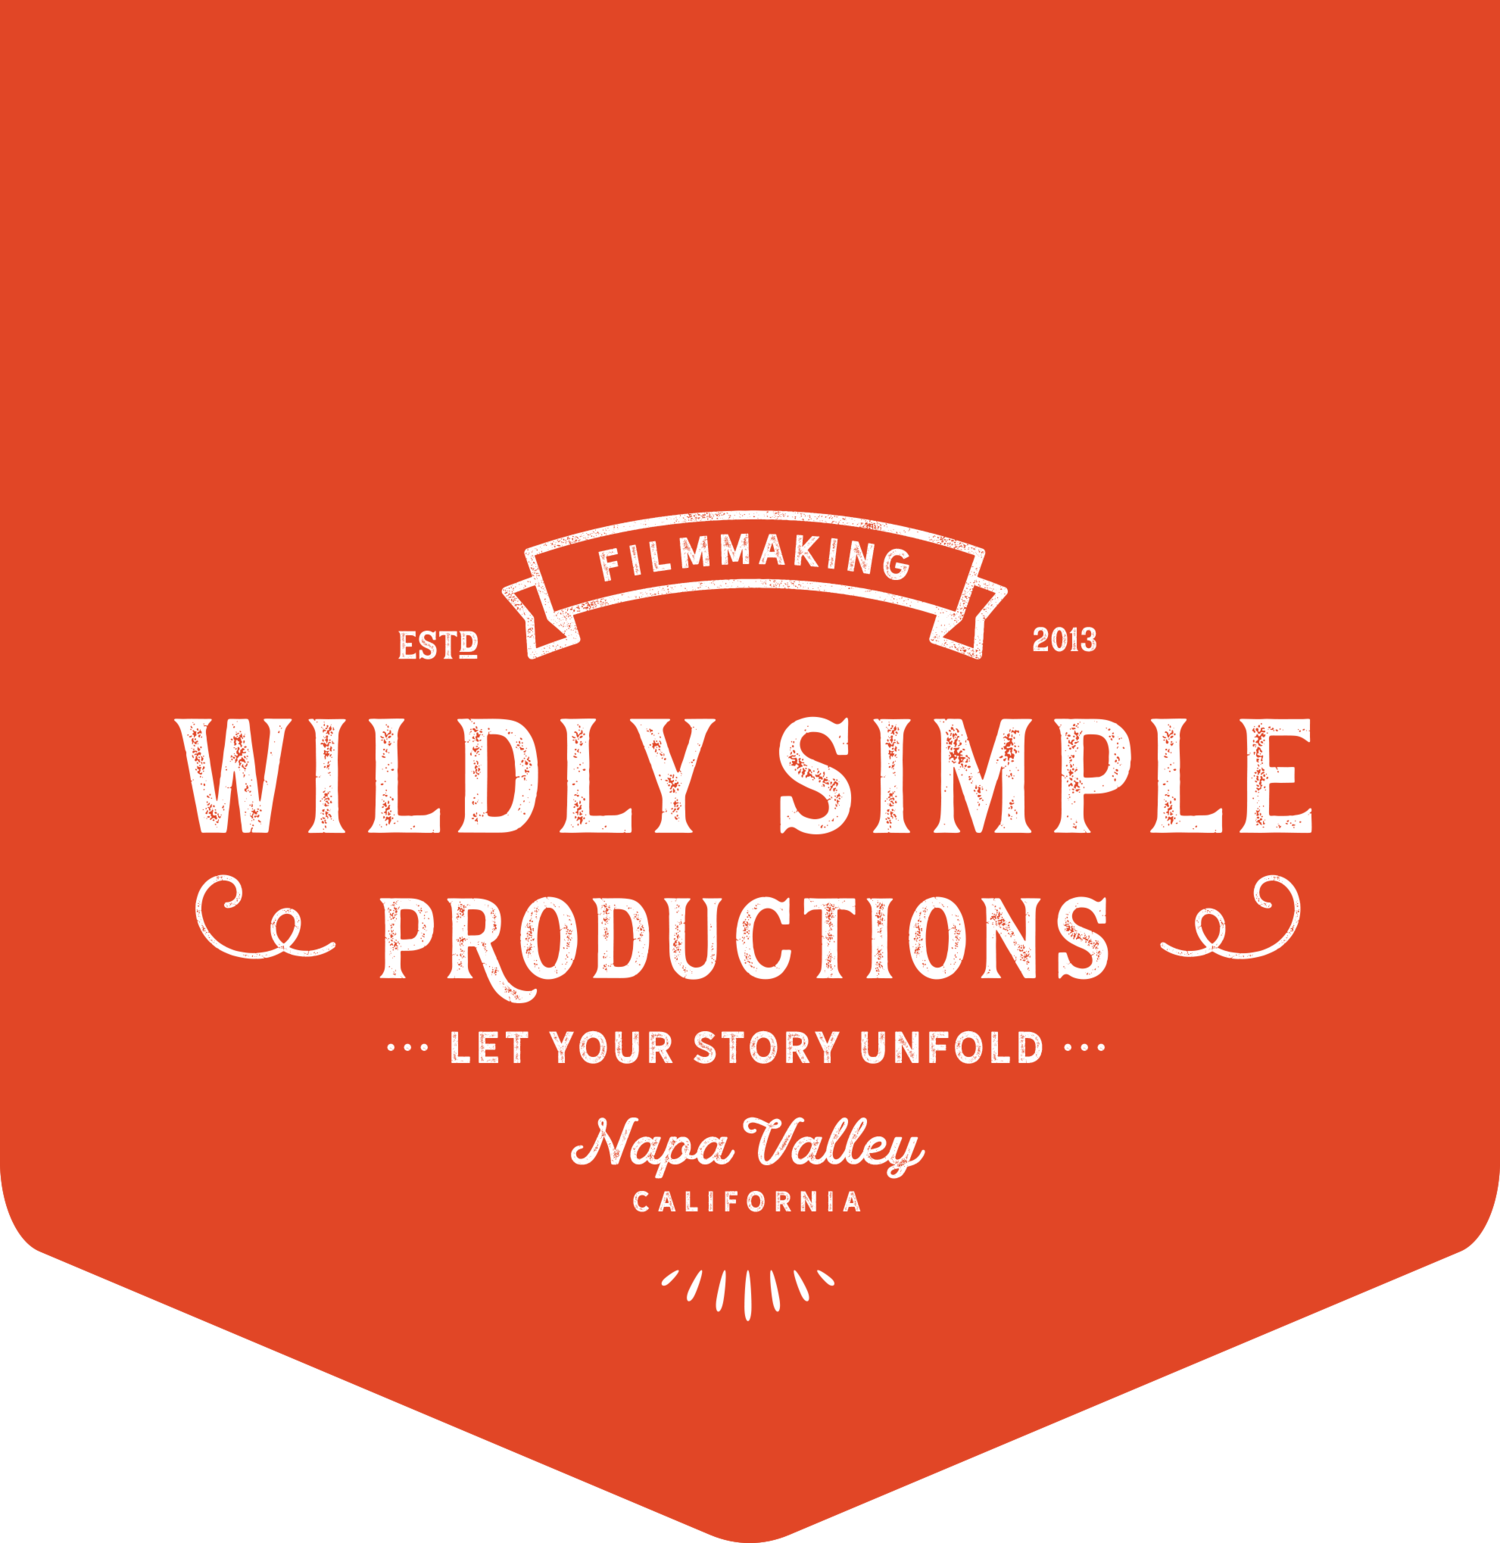 WILDLY SIMPLE PRODUCTIONS